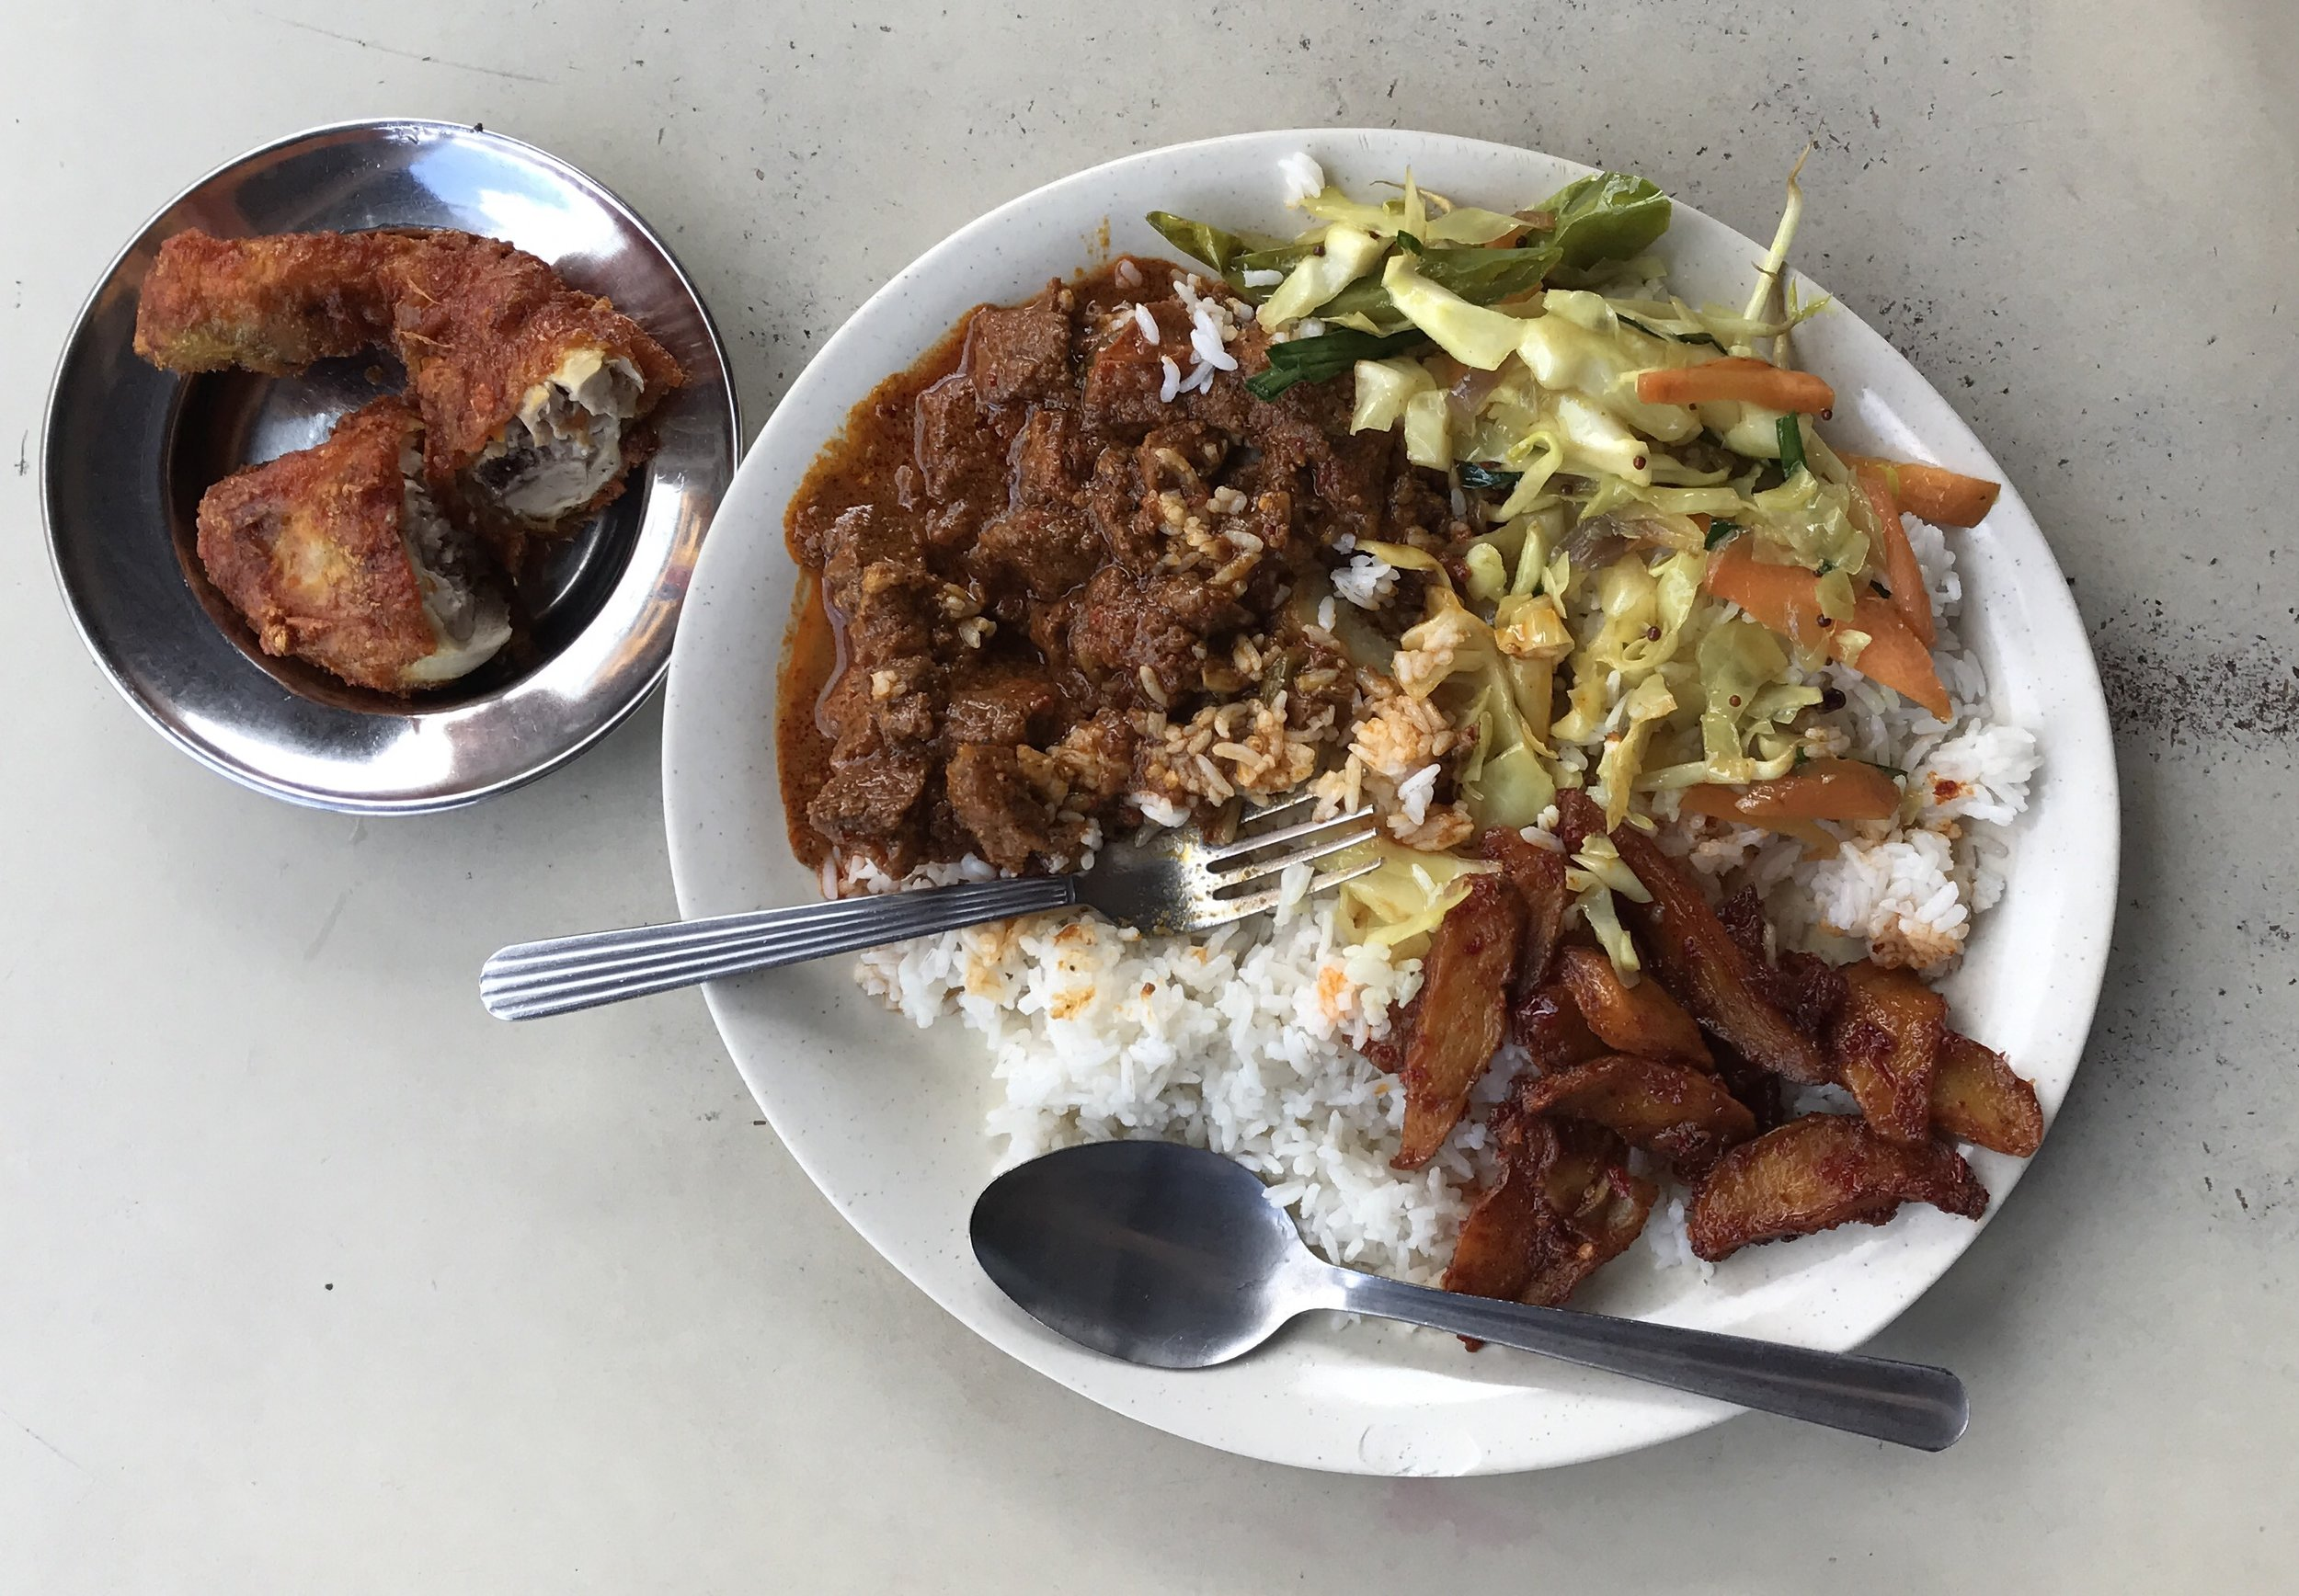 Beef curry, fried chicken, mixed greens, and potatoes in a spicy curry on top of rice - $1.